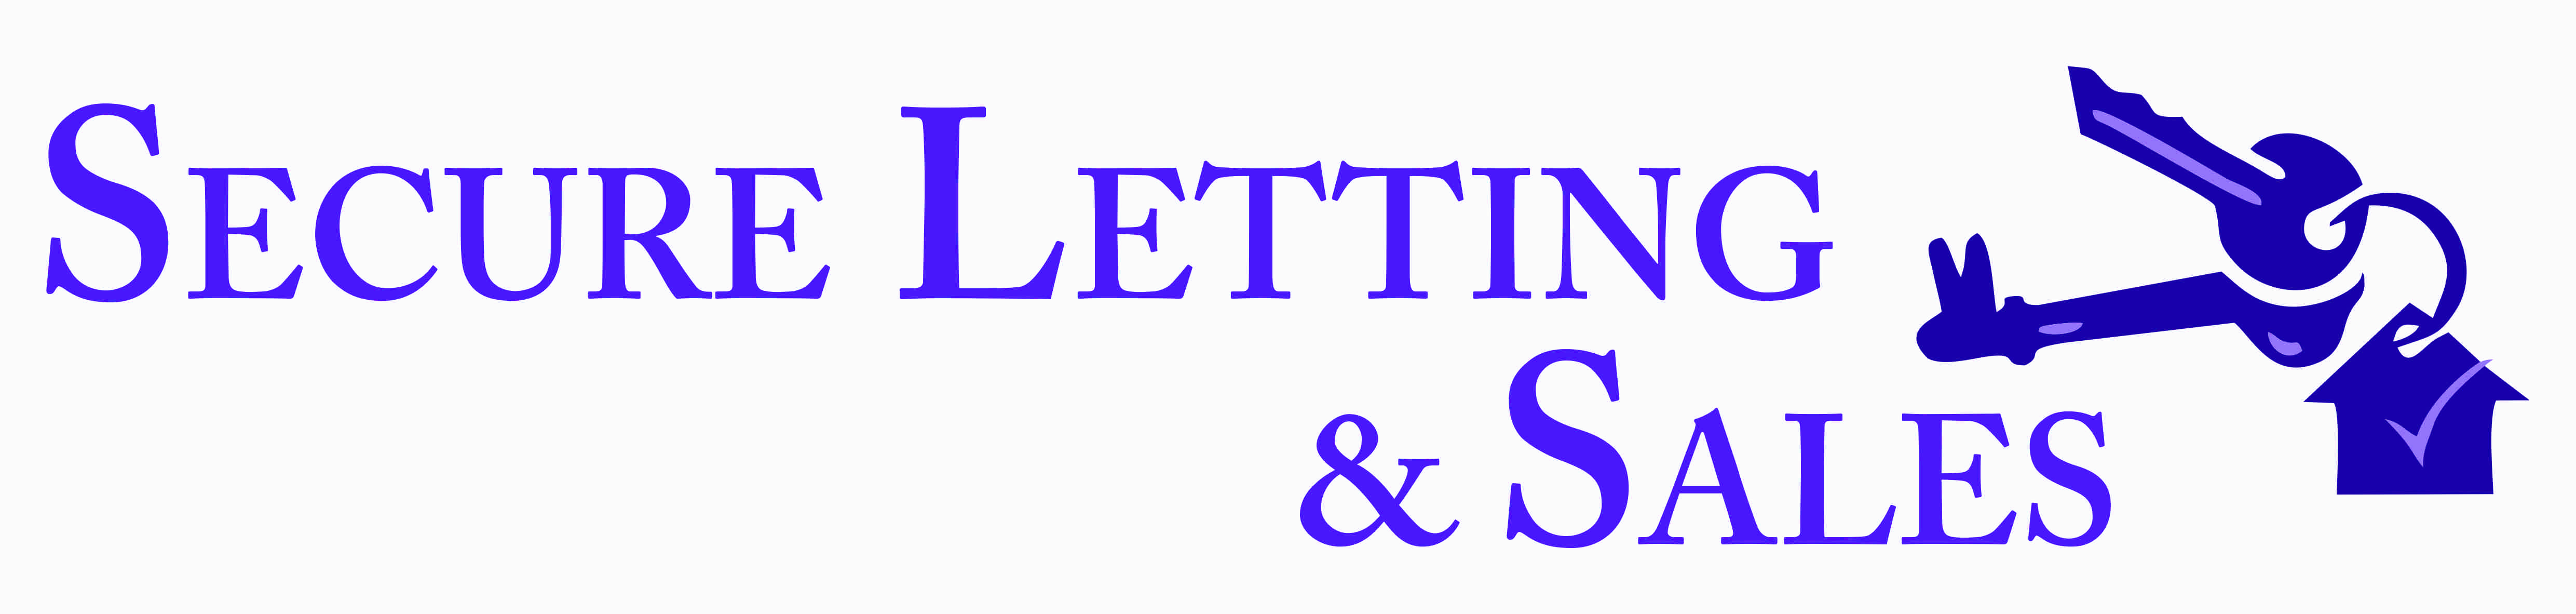 Secure Letting Ayrshire